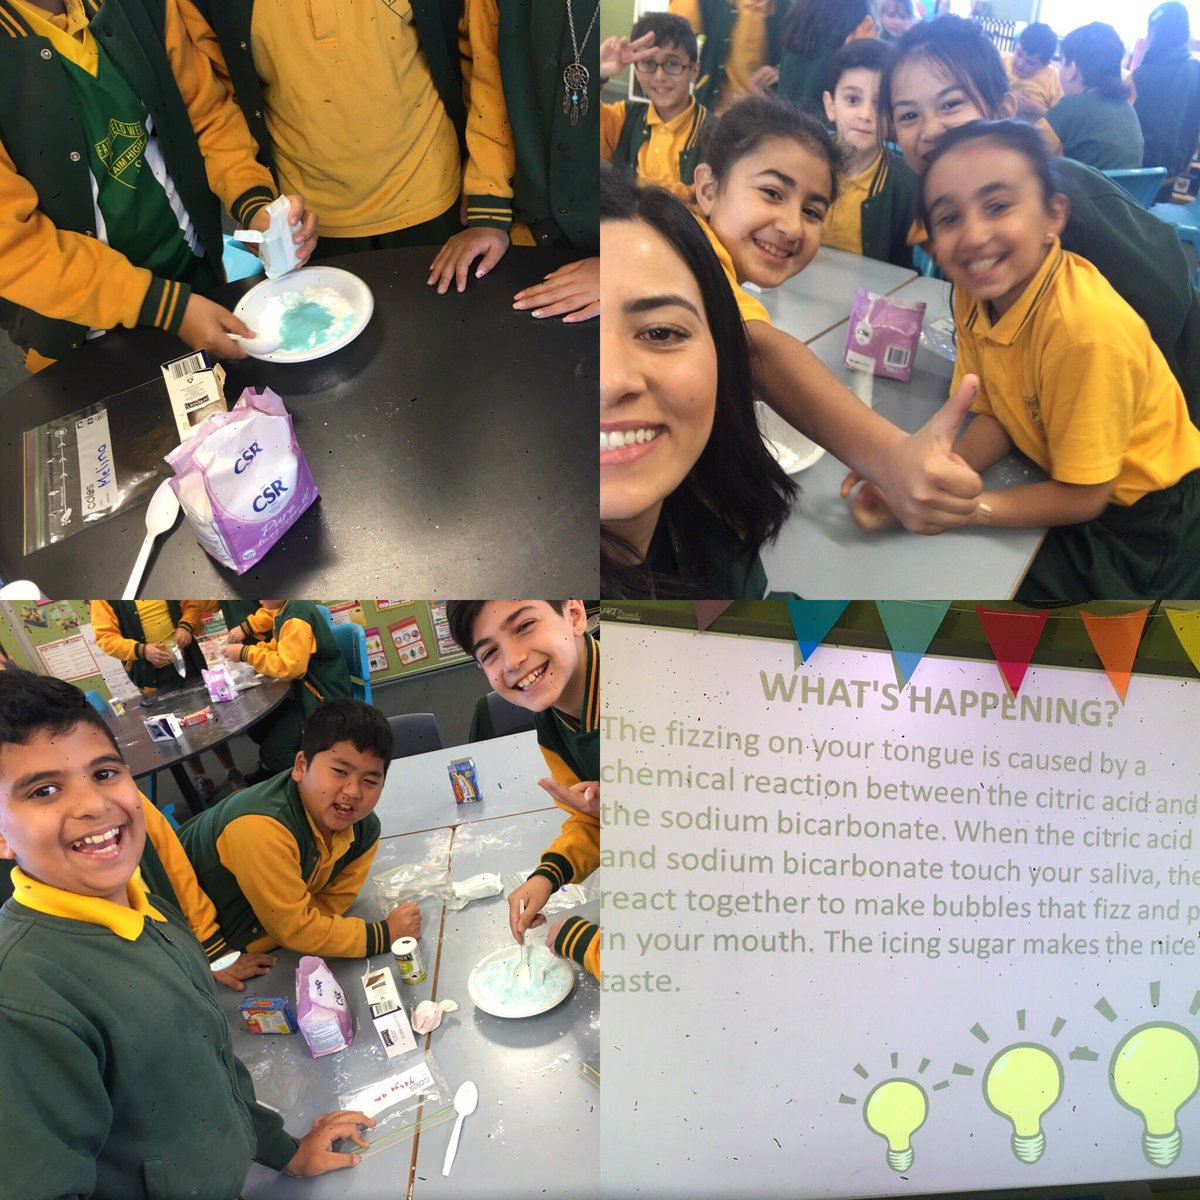 More from @FairWestPS #sciencefunday #educatingyoungsouls #makingsherbet #chemicalreaction #experimenting @Genelle029  <br>http://pic.twitter.com/S3C6JEZxn8